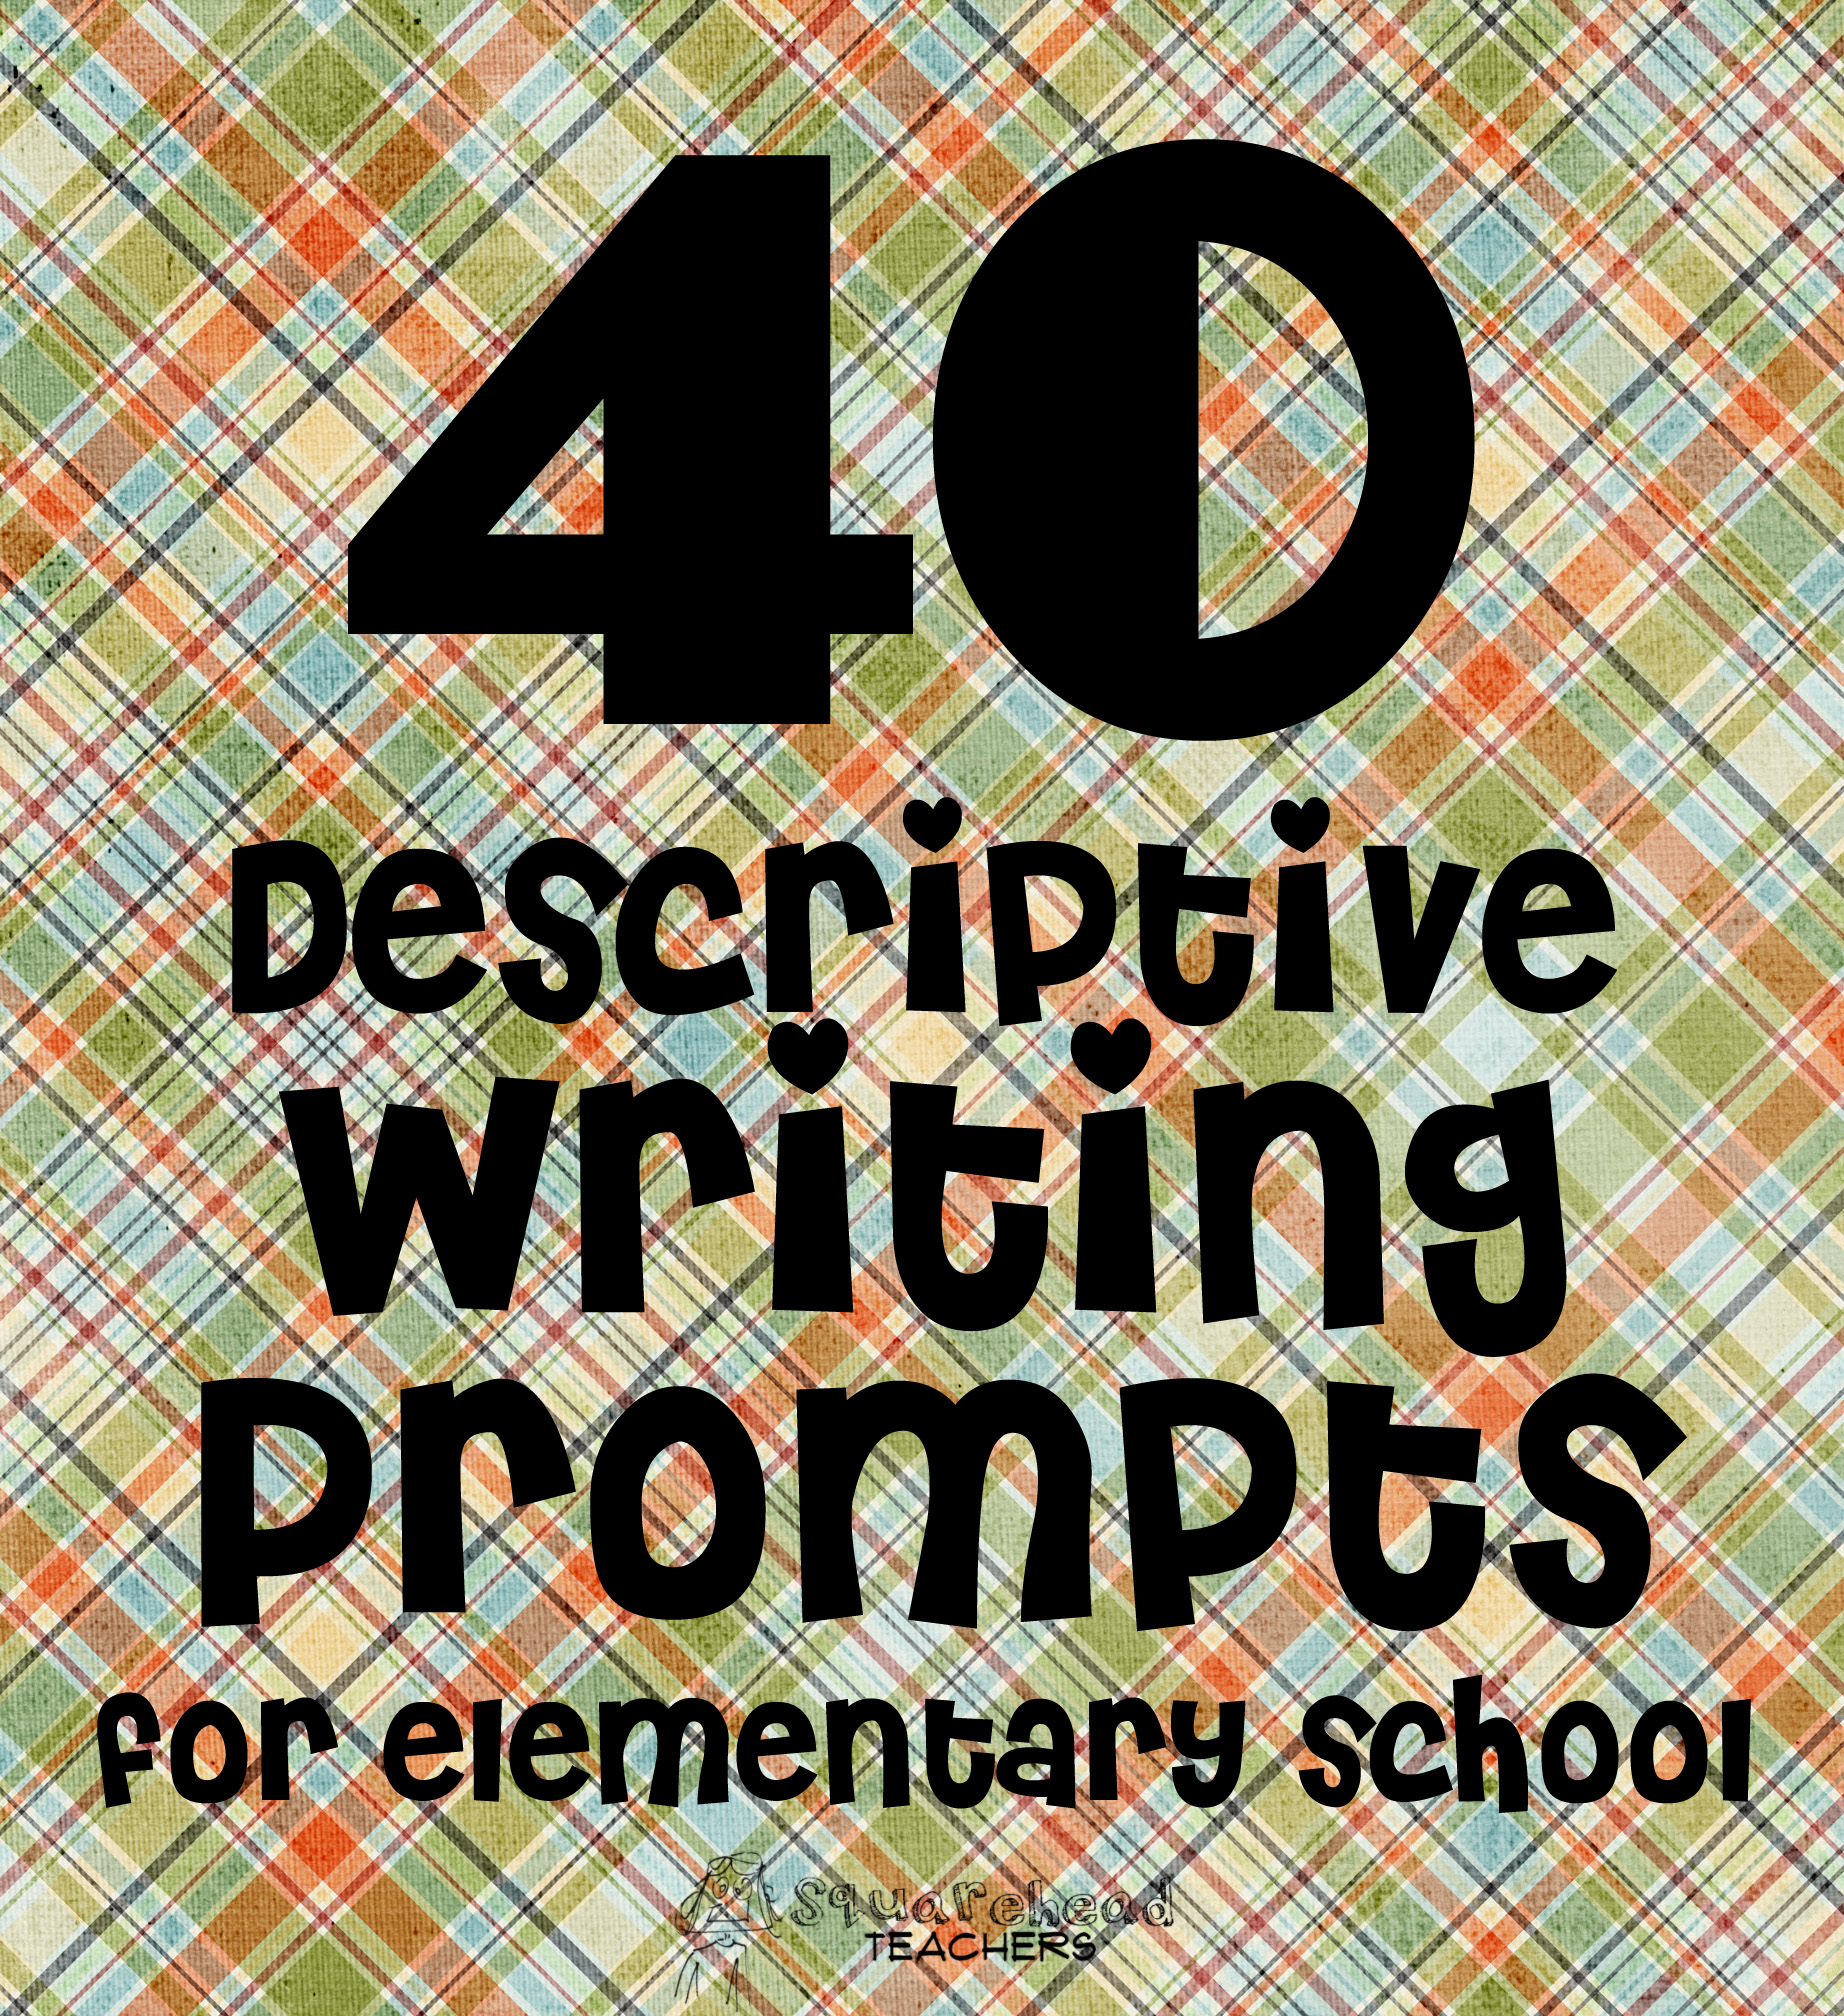 5 paragraph essay prompts for elementary